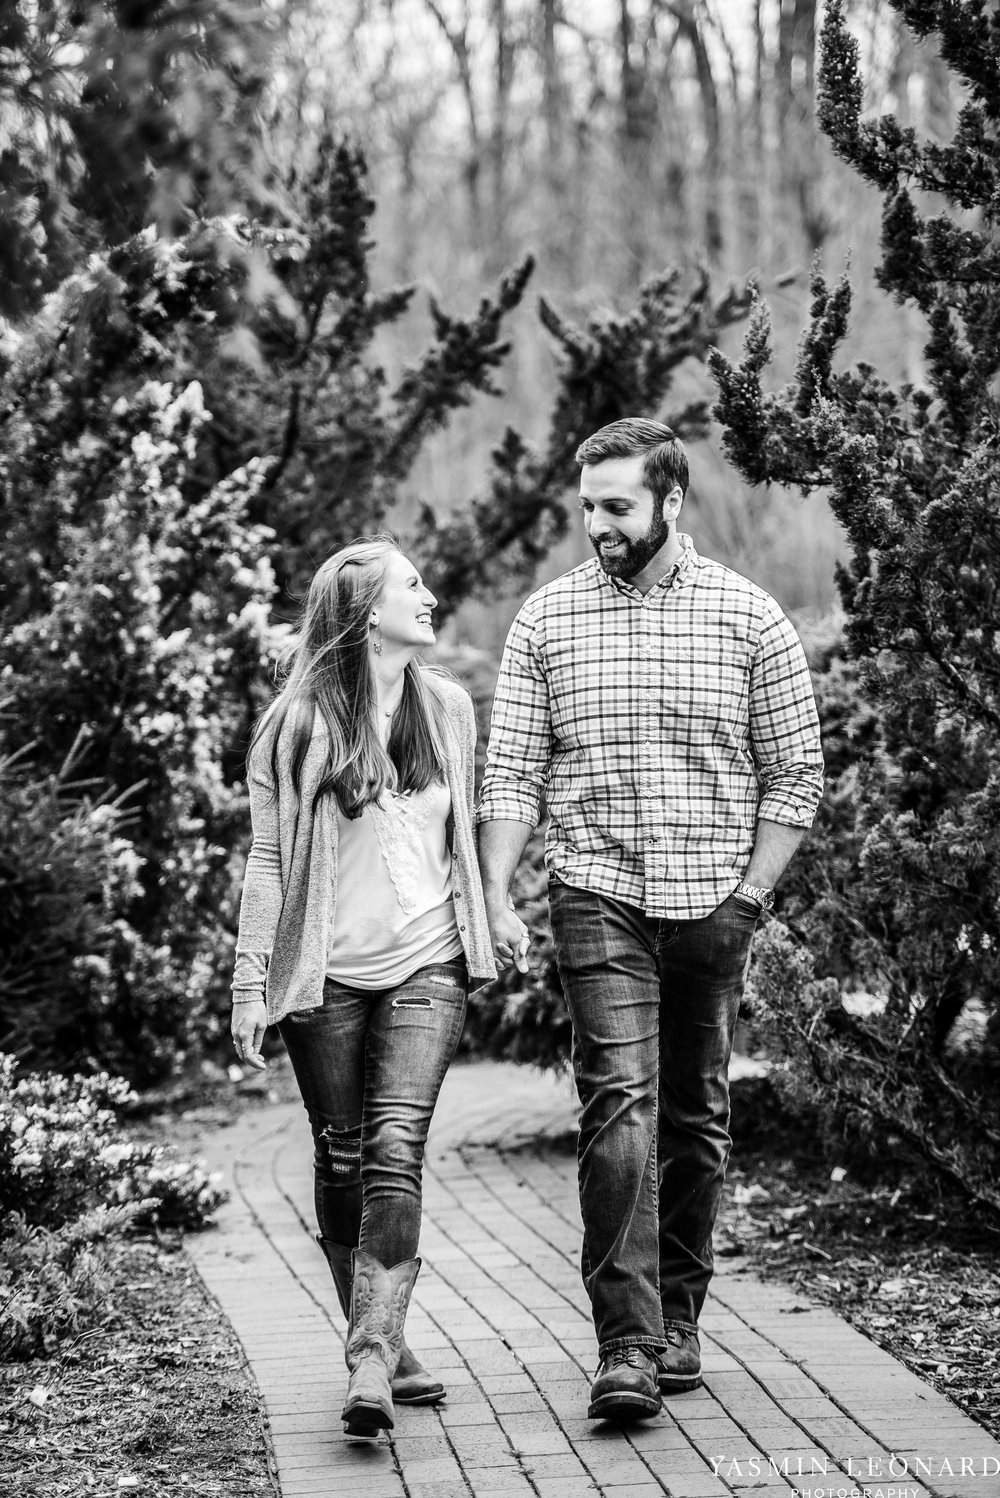 Engagement Session at Tanglewood - Spring Engagement Session - Engagement Session Ideas - Engagement Pictures - What to Wear for Engagement Pictures - Yasmin Leonard Photography-4.jpg